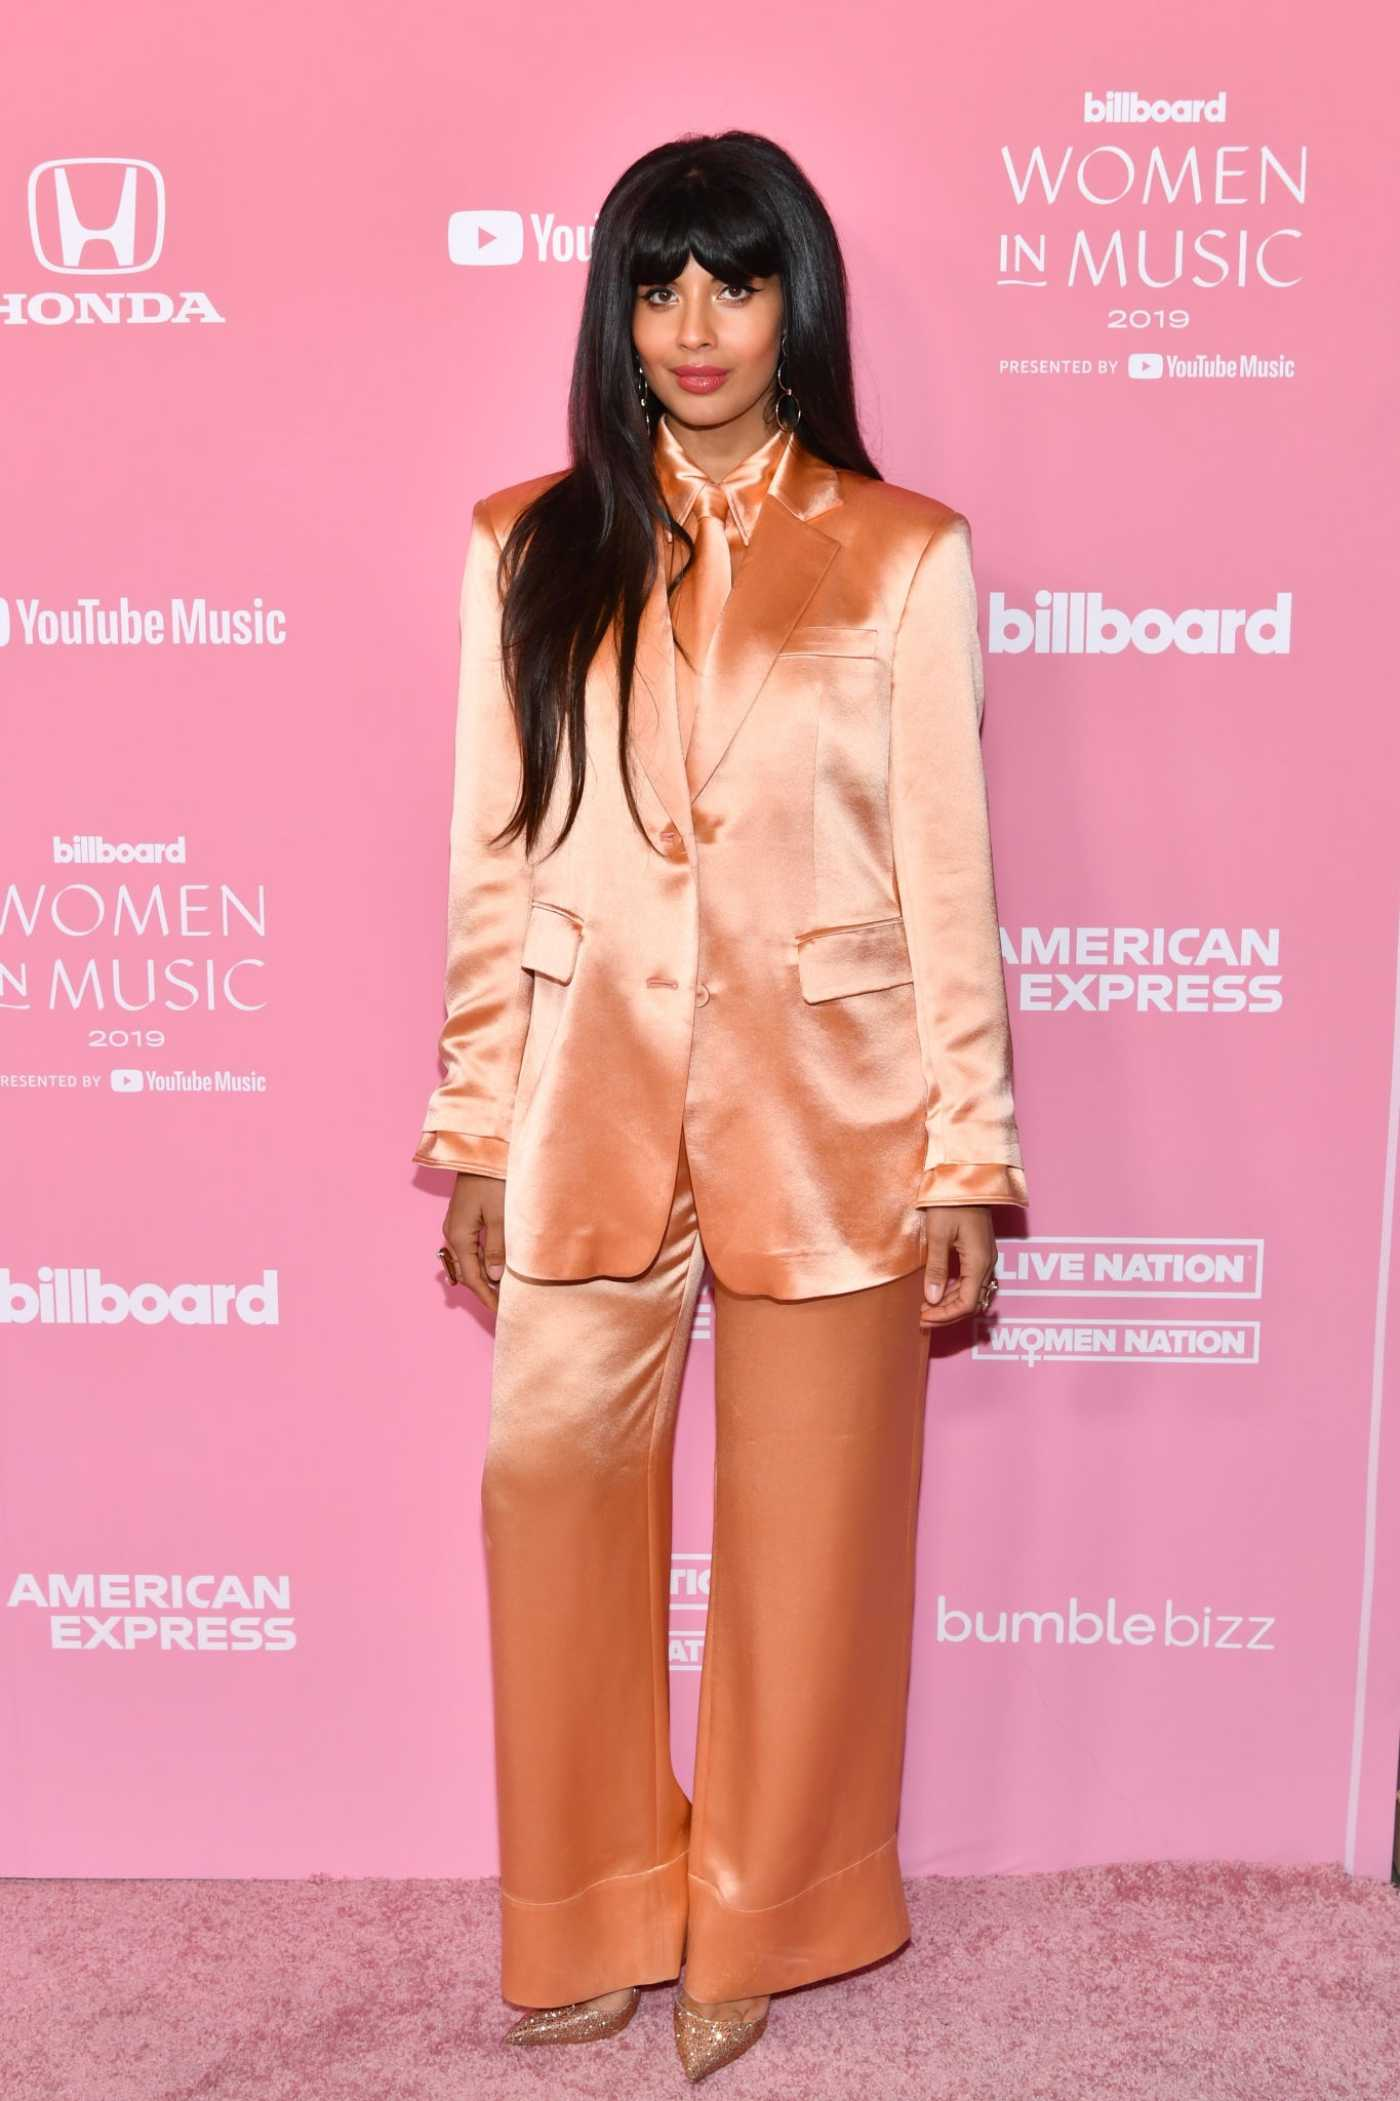 Jameela Jamil Attends 2019 Billboard Women in Music at Hollywood Palladium in Hollywood 12/12/2019